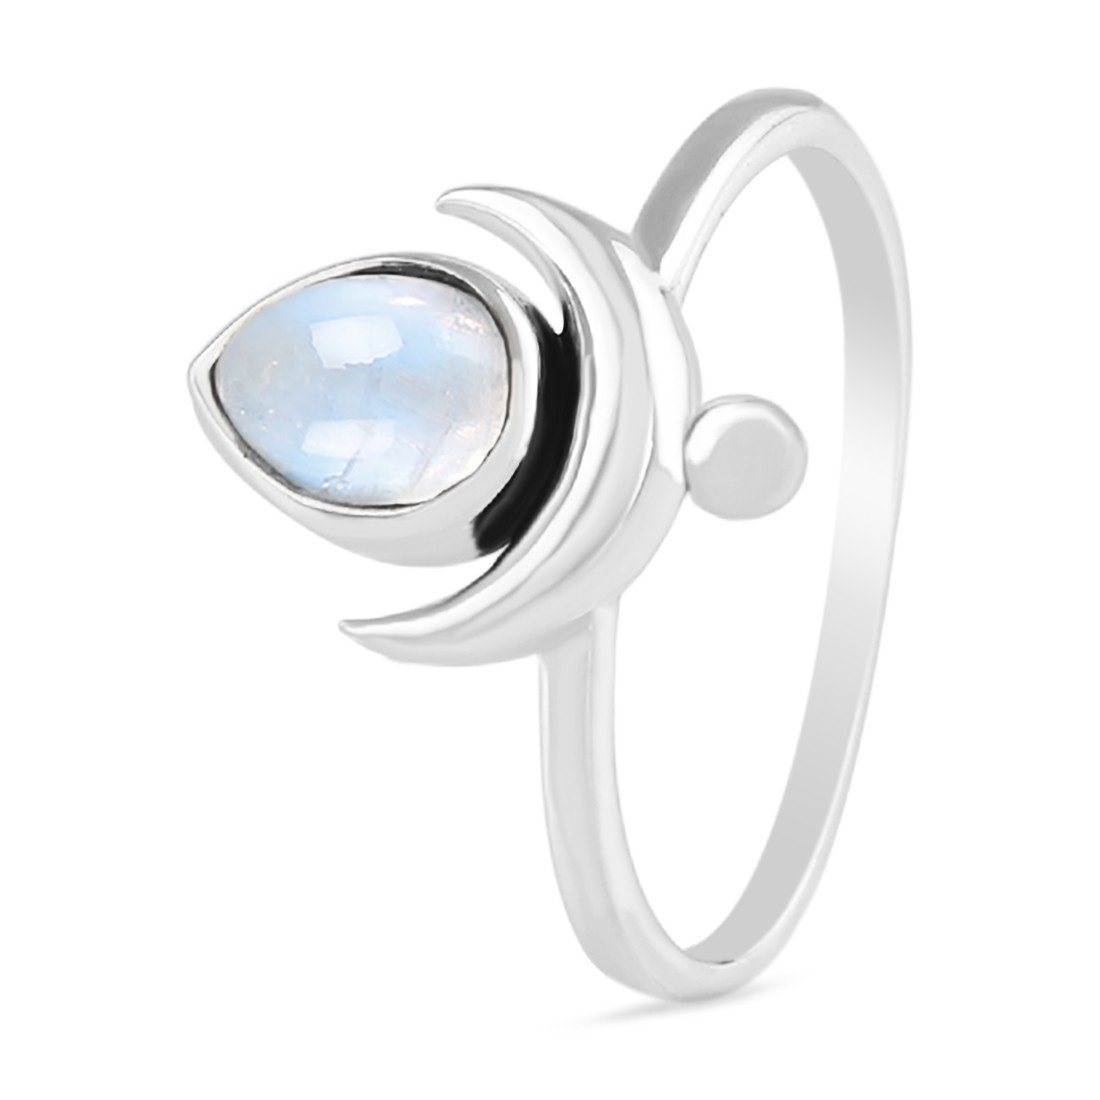 Moonstone Ring-Crescent Droplet Moonstone Ring 925 SILVER & MOONSTONE